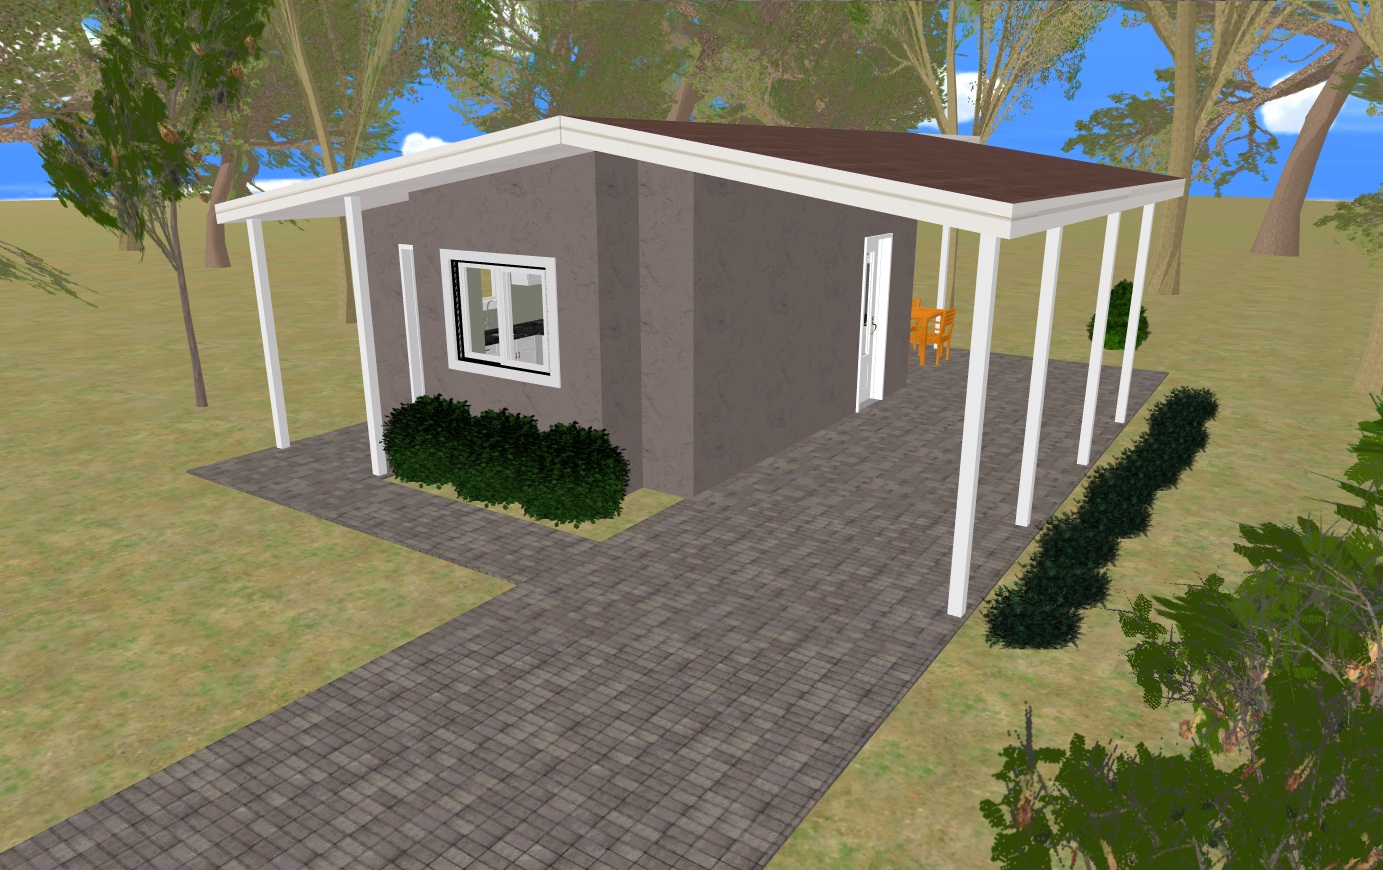 Small house plans with carports modern small house plans for Carport in front of house